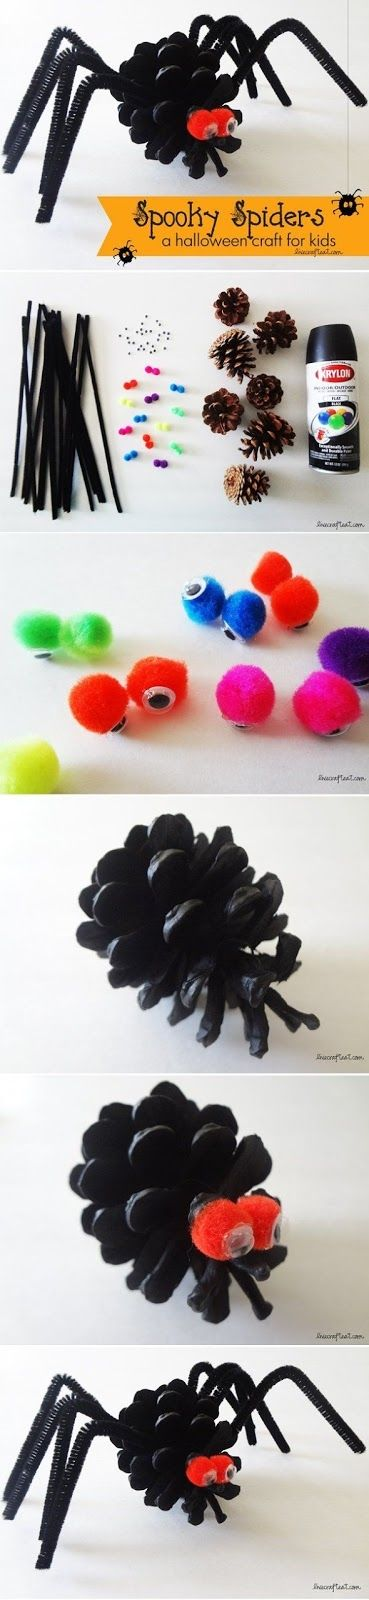 DIY Halloween Spooky Spiders Pictures, Photos, and Images for Facebook, Tumblr, Pinterest, and Twitter